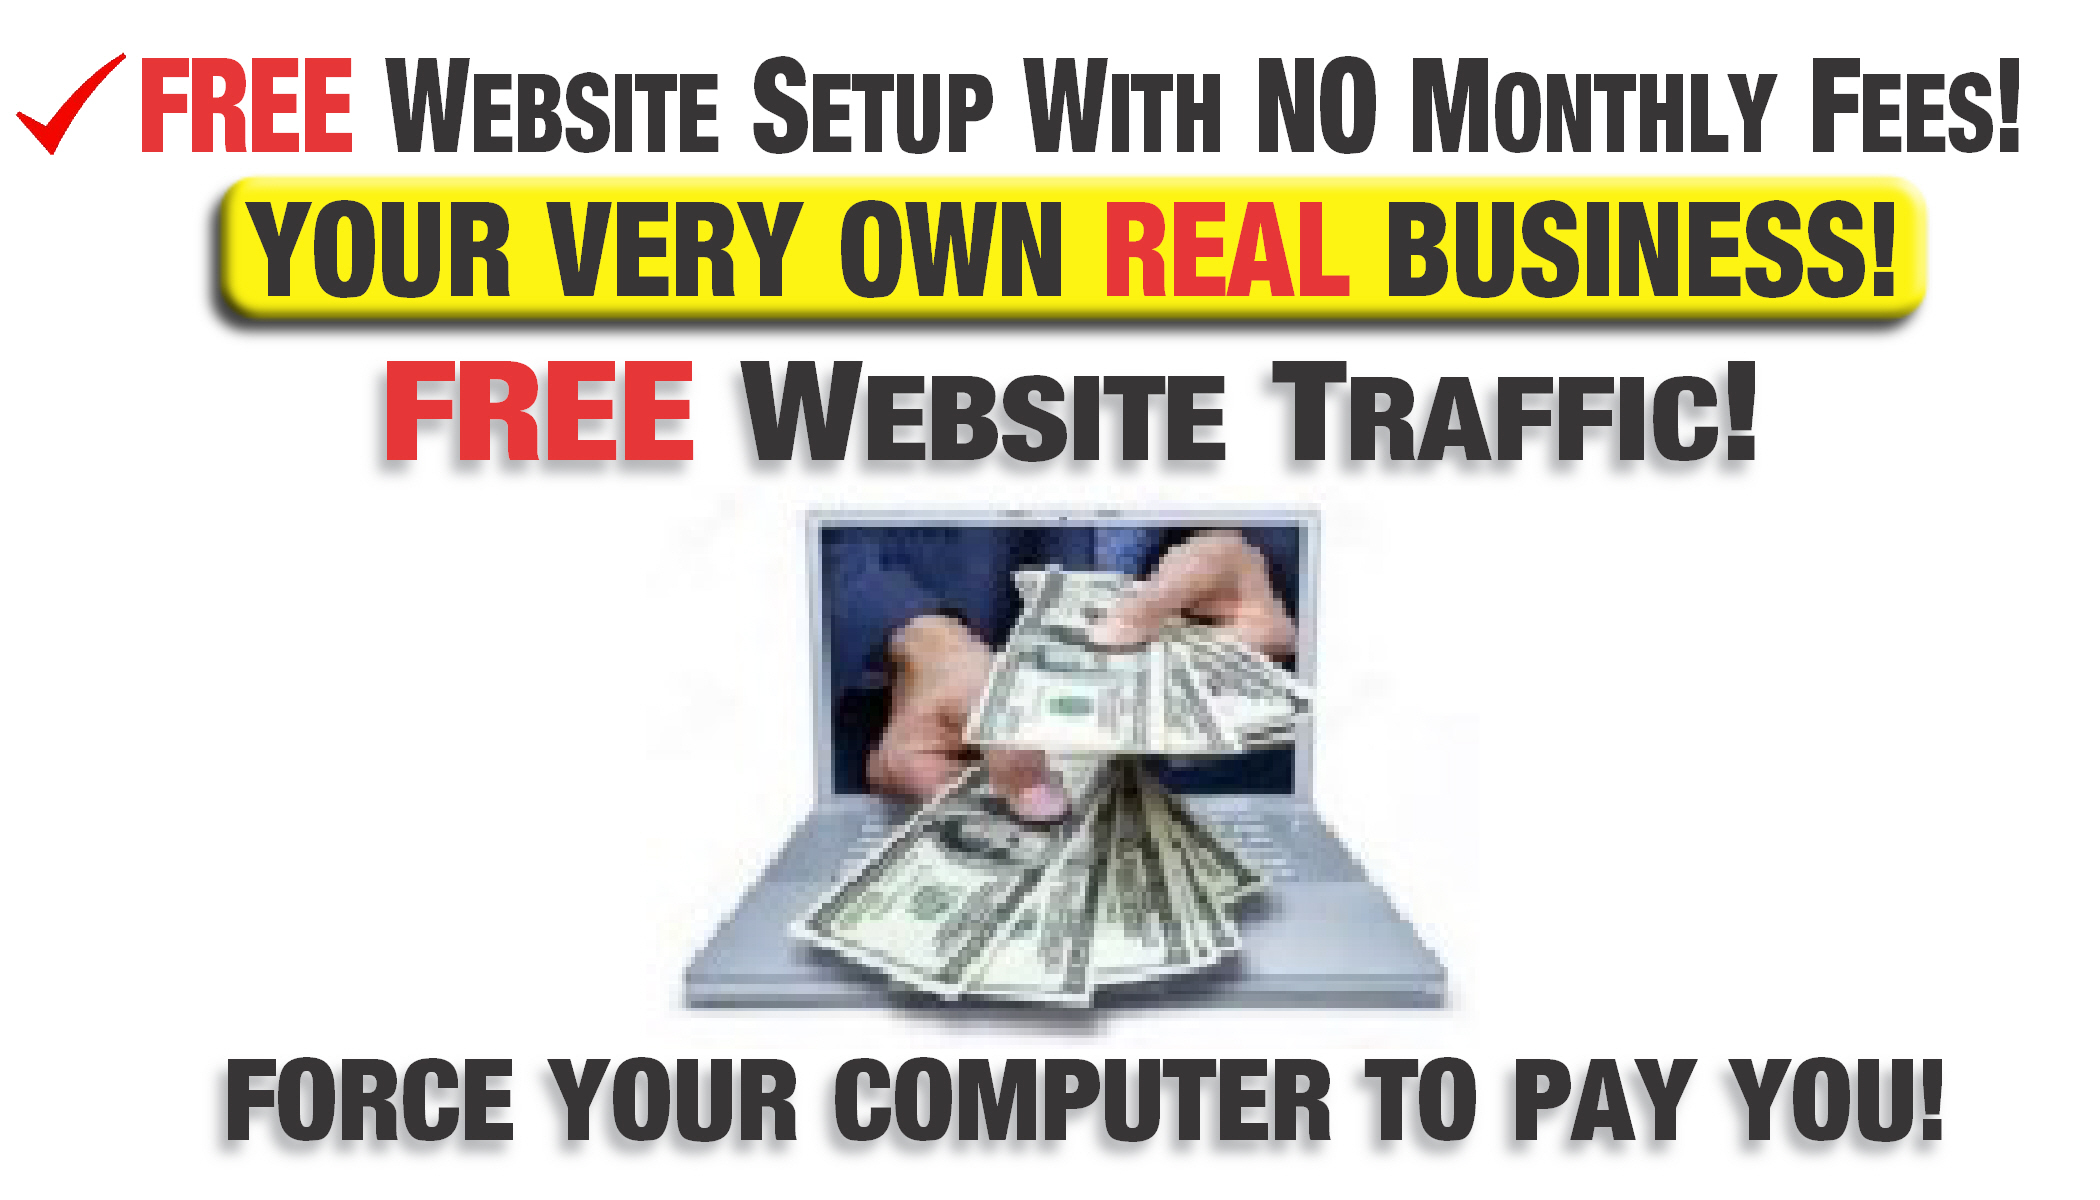 https://www.besteasywork.com/YOUROWN.JPG